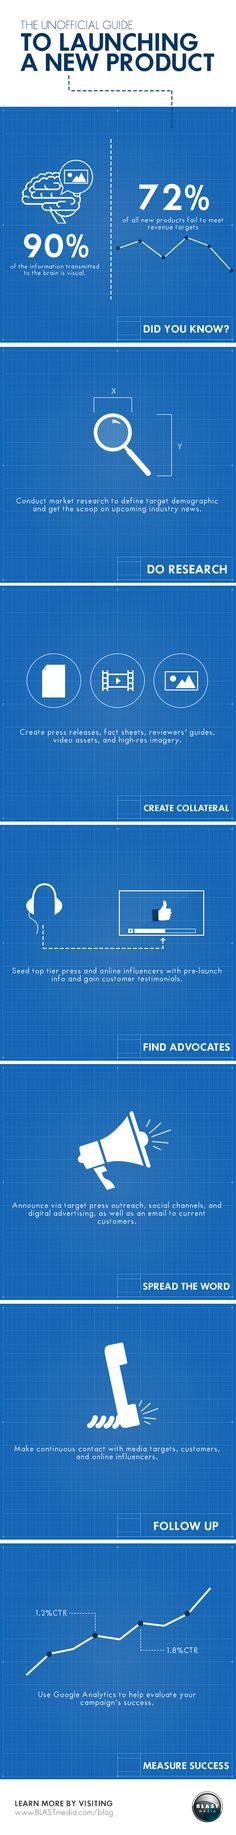 The Unofficial Guide to Launching a New Product via #Infographic